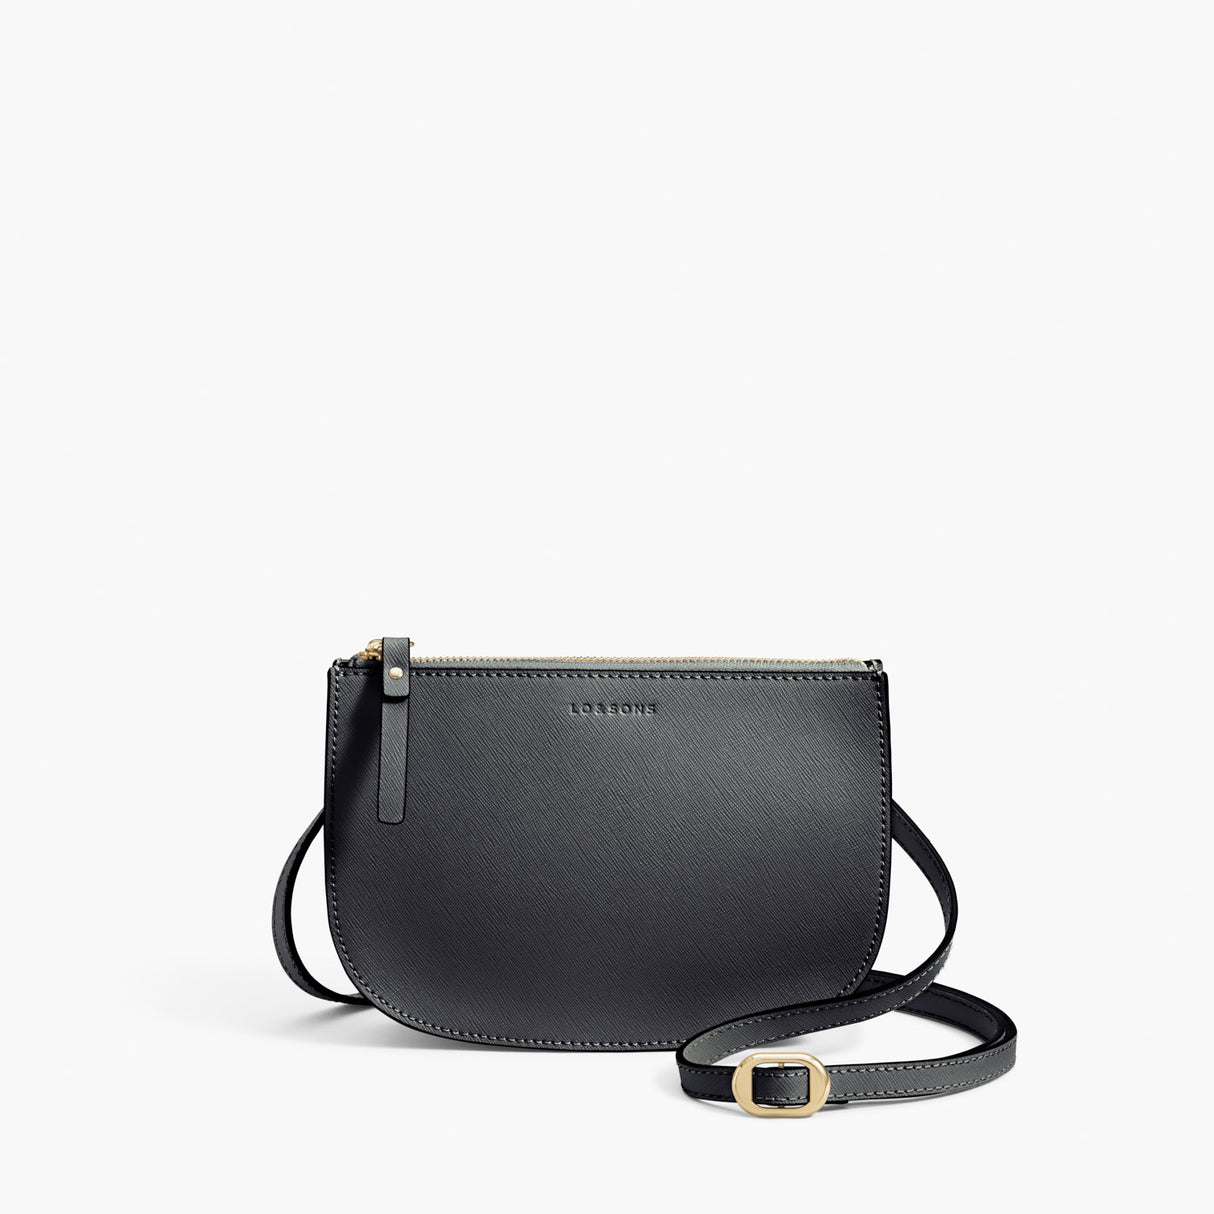 Front Crossbody - Waverley 2 - Saffiano Leather - Dark Grey / Gold / Grey - Crossbody Bag - Lo & Sons